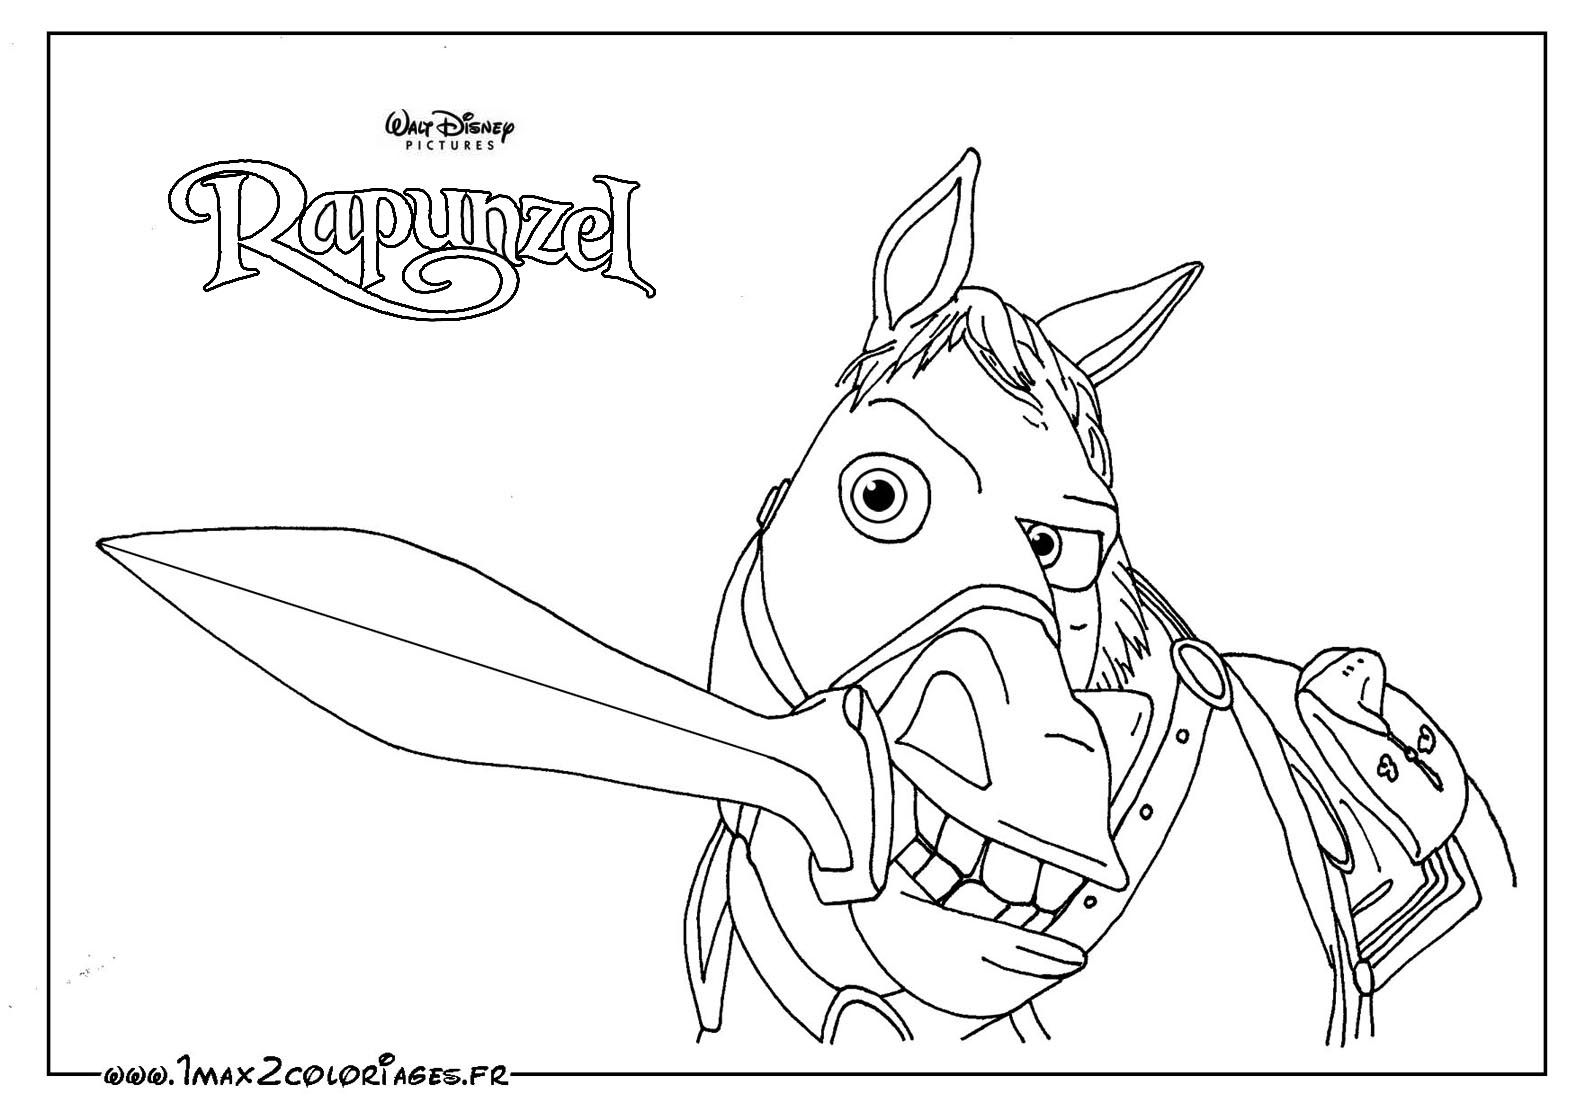 Maximus Cheval Raiponce 729388 Jpg 1594 1103 Coloriage Disney